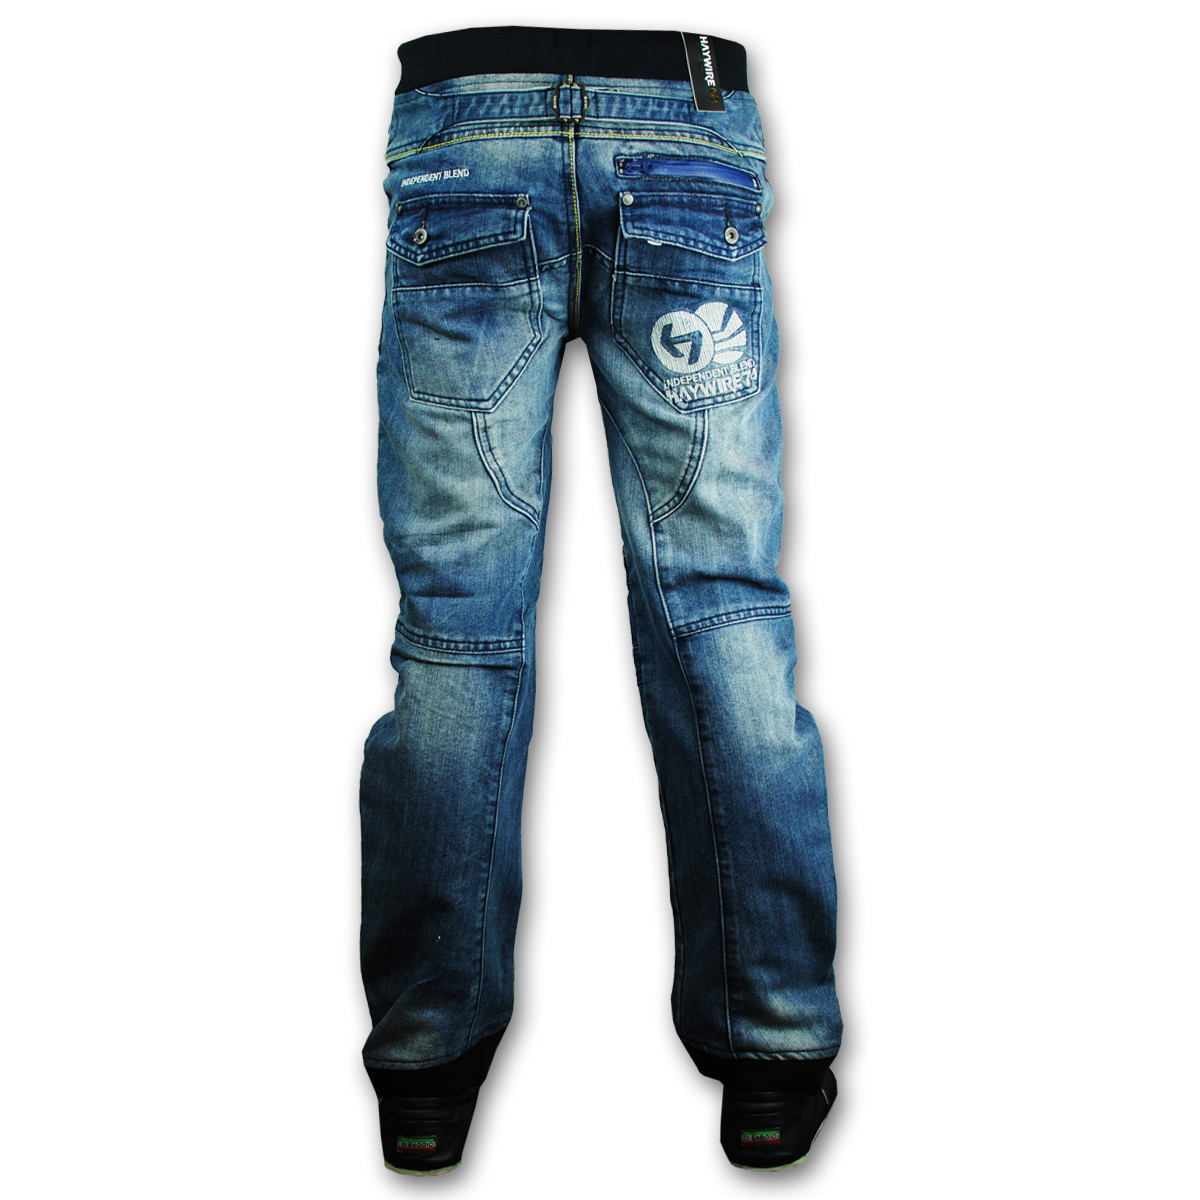 Cuffed Jeans is rated out of 5 by 2. Rated 1 out of 5 by SailingTheAmerica from VERY DISAPPOINTED -- Loyal Customer for 11 years I ordered these jeans for my son to wear during the holidays, with a matching J & J sweater.